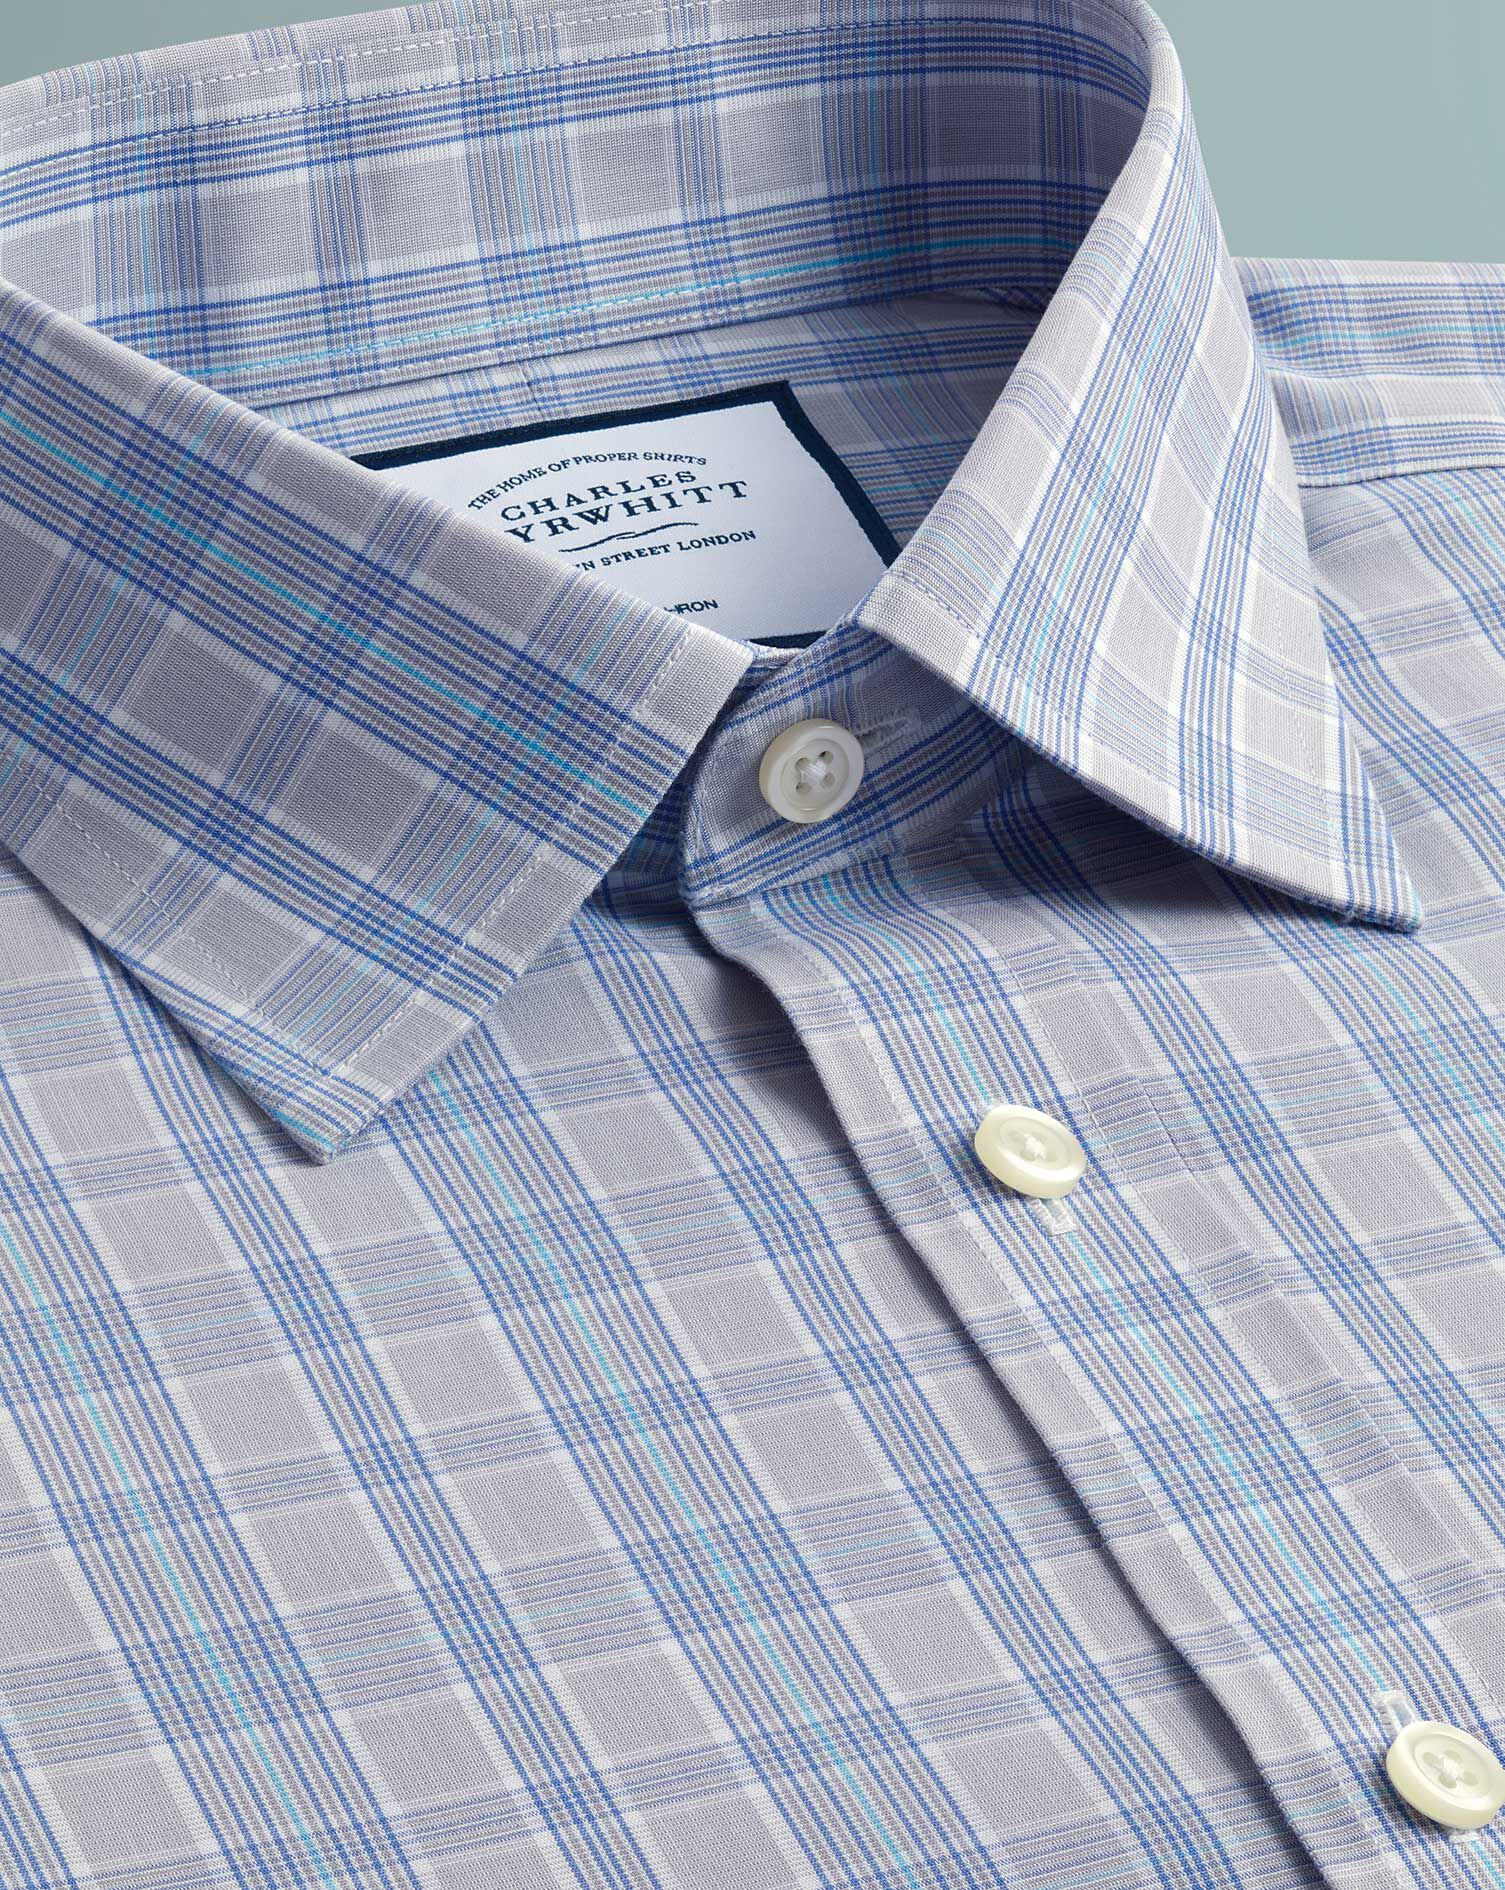 Slim Fit Non-Iron Prince Of Wales Grey and Aqua Cotton Formal Shirt Single Cuff Size 16.5/33 by Char